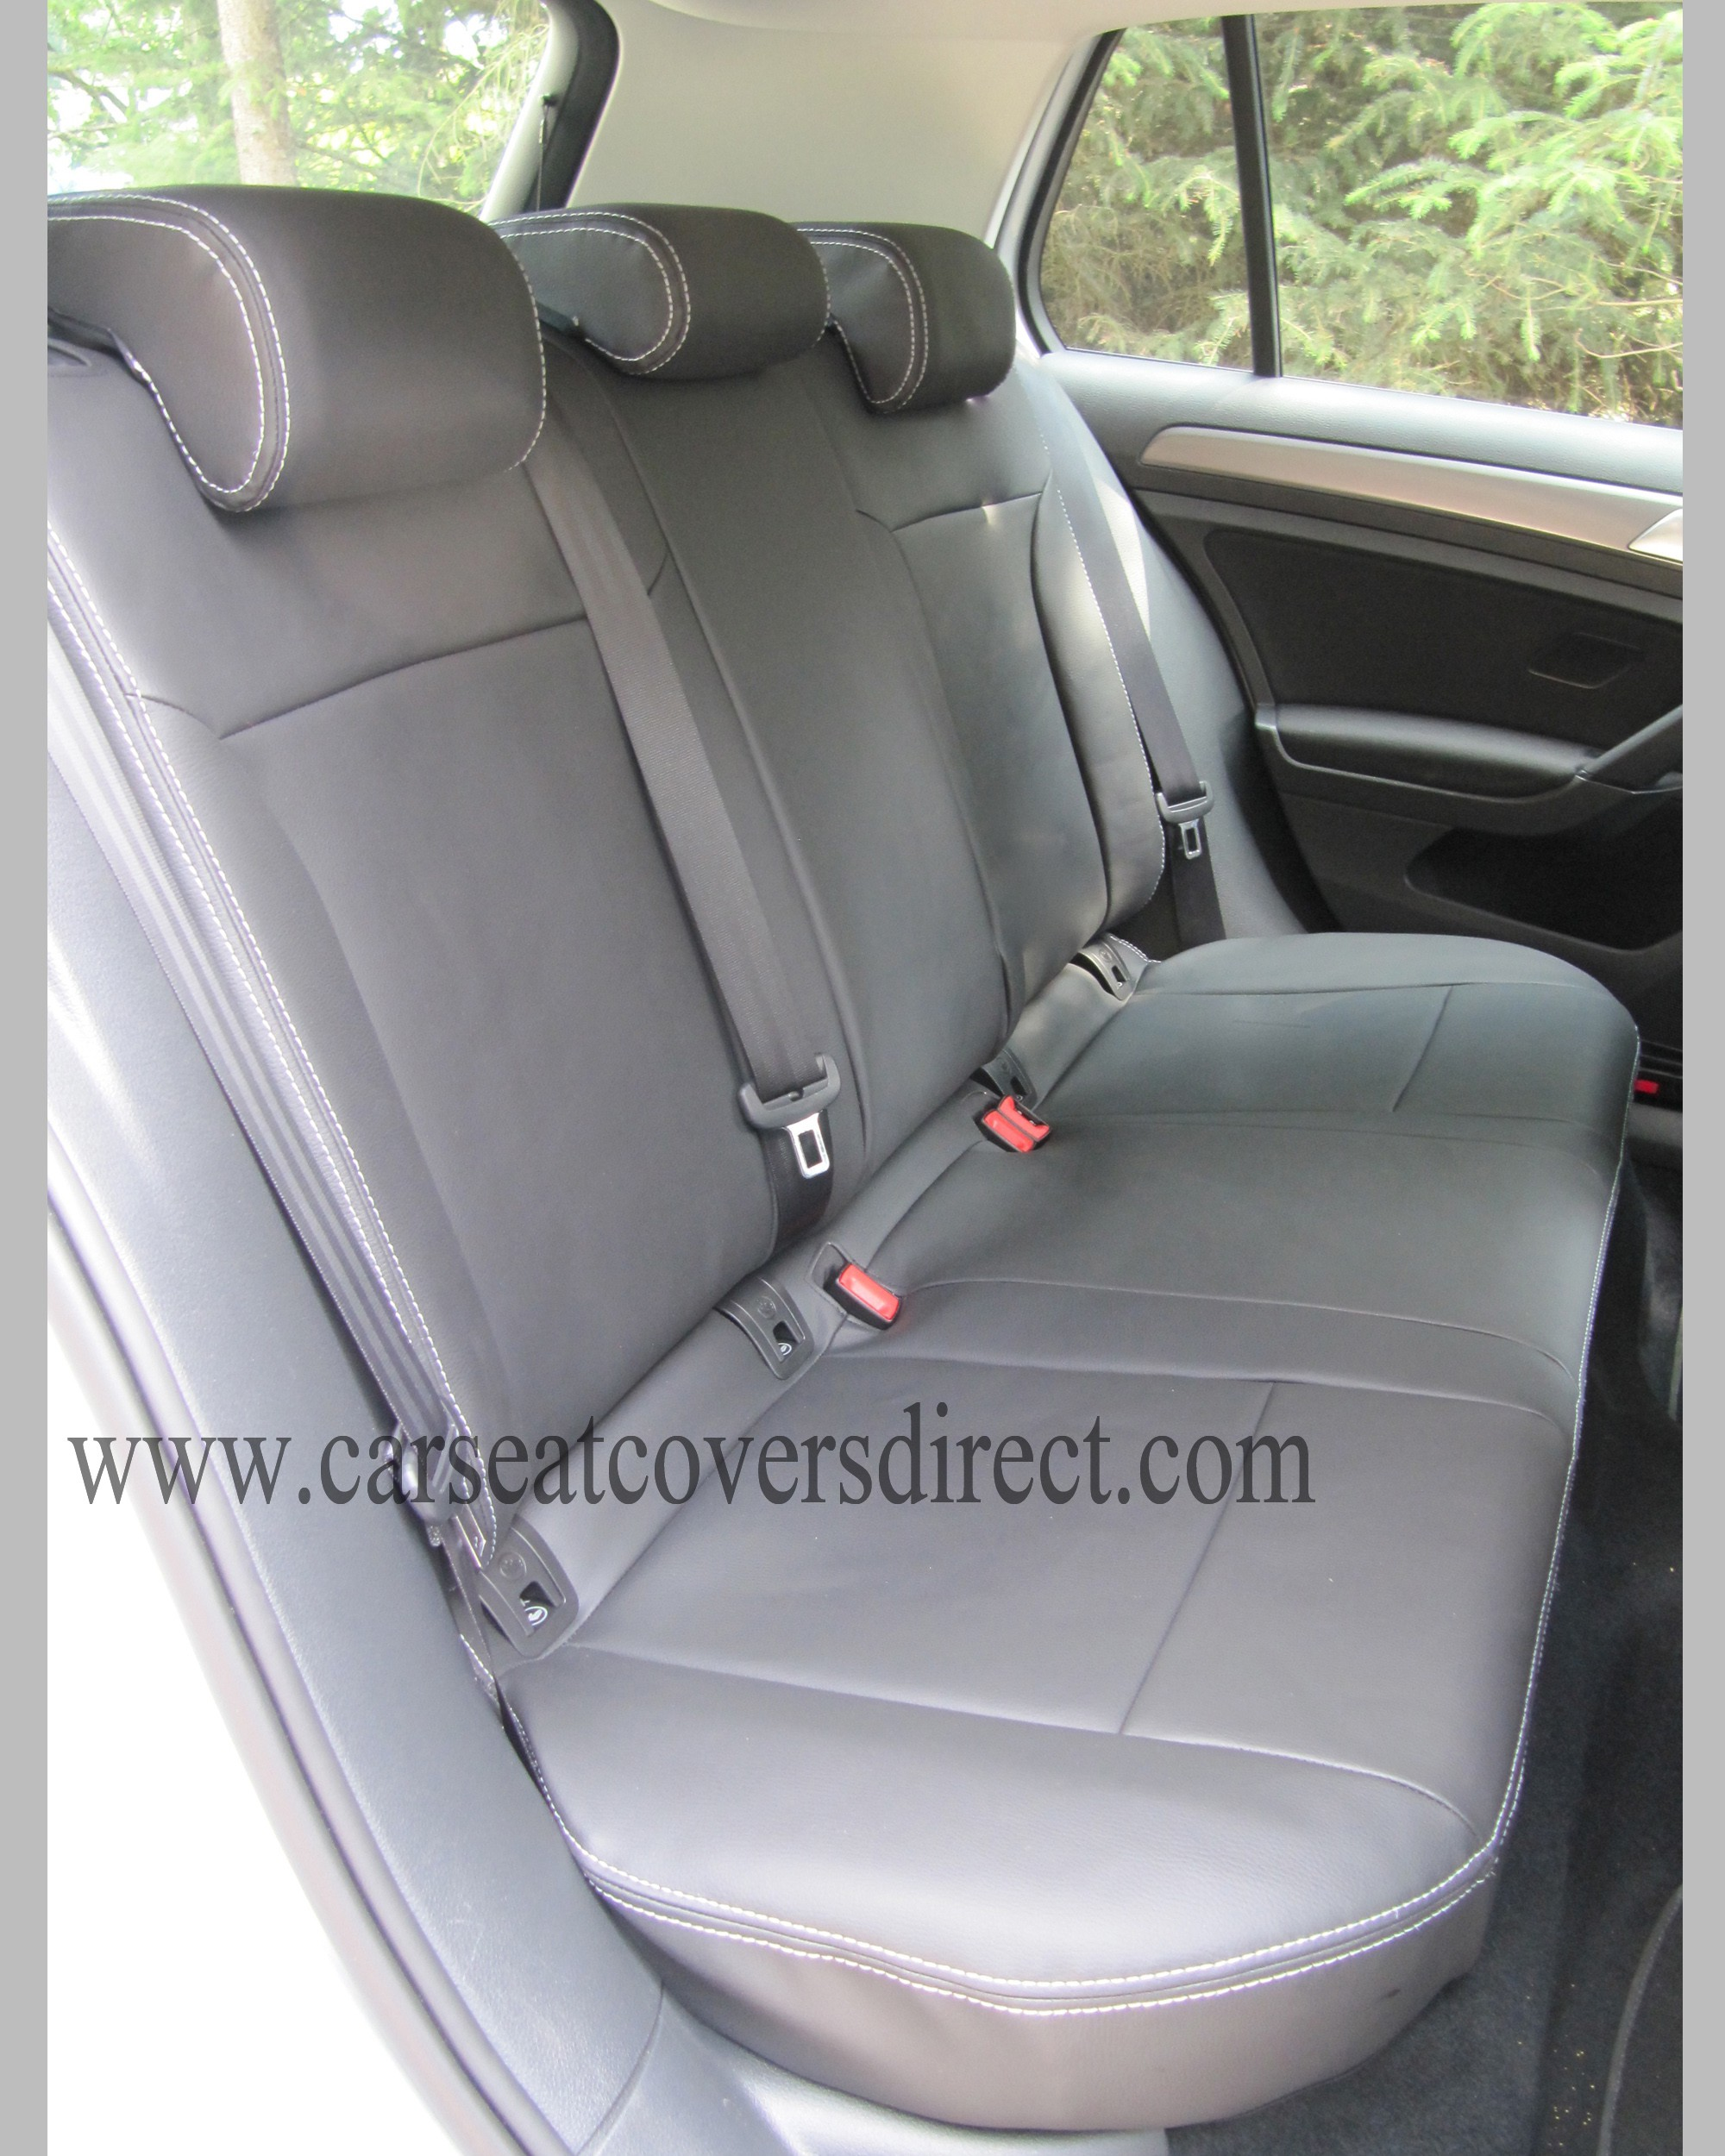 volkswagen vw golf mk7 seat covers car seat covers direct tailored to your choice. Black Bedroom Furniture Sets. Home Design Ideas